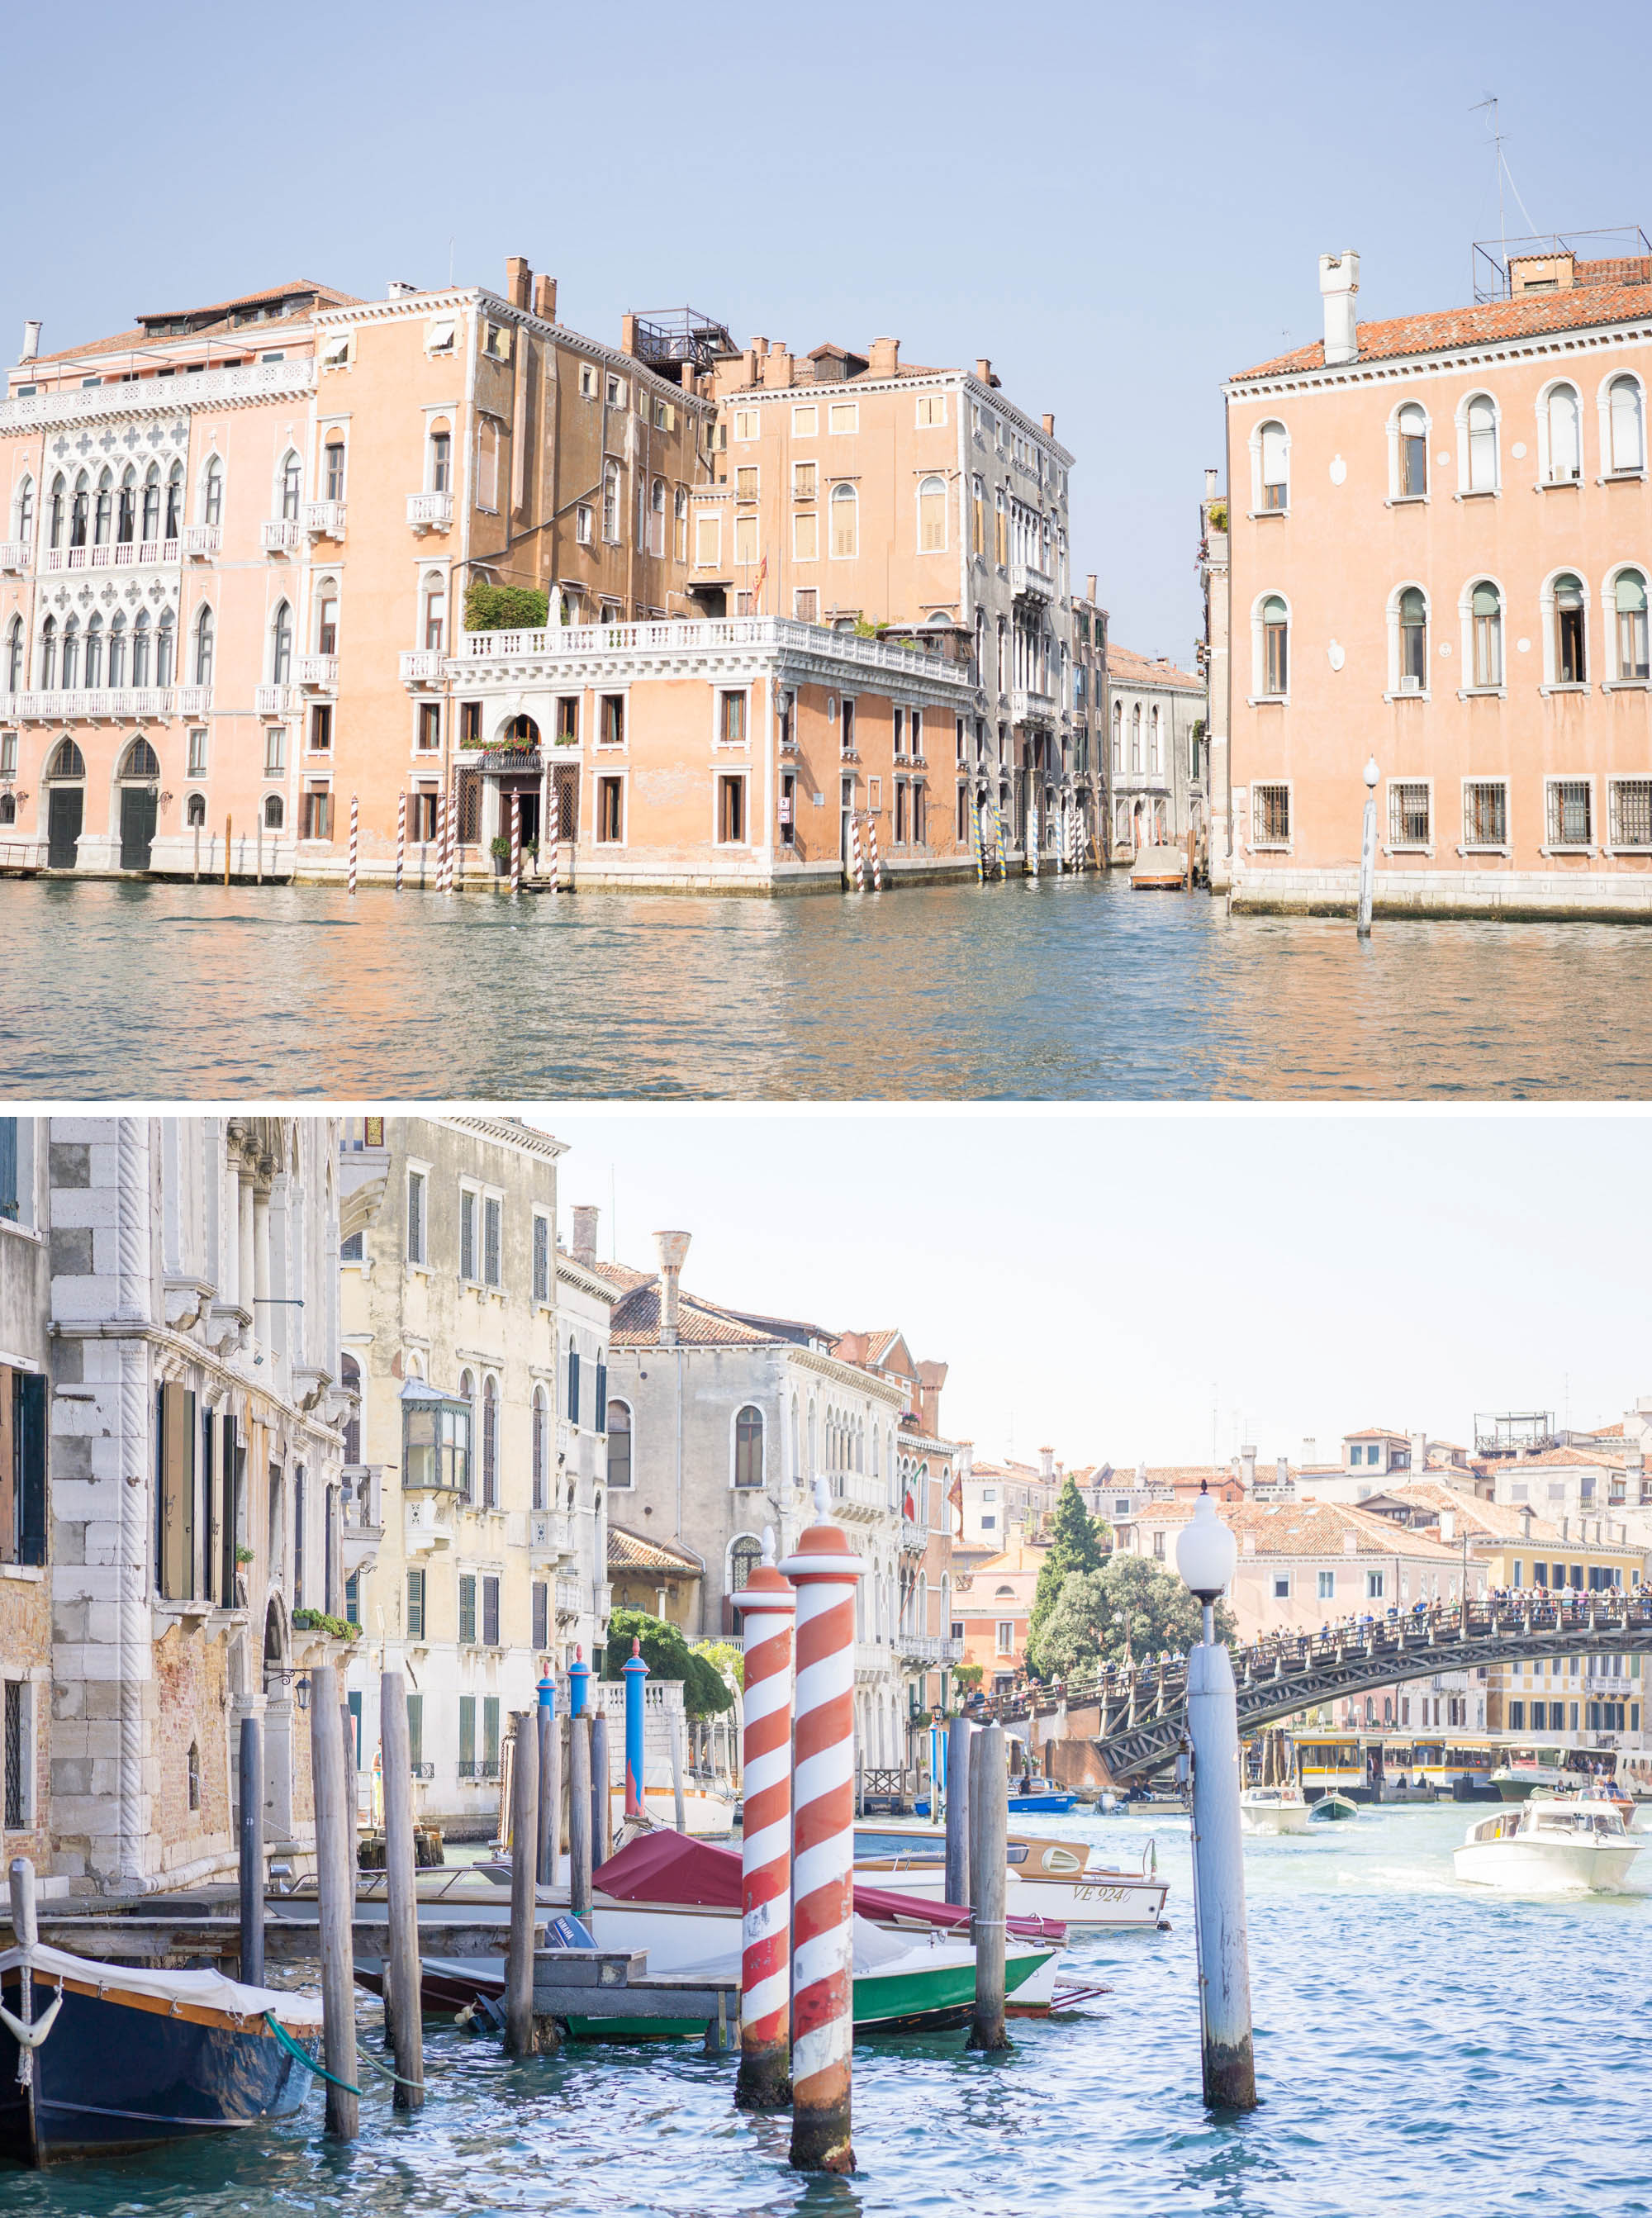 Venezia Travel Guide | Travel Photography | Experience magical Venice through inspiring photography and postcard worthy moments.